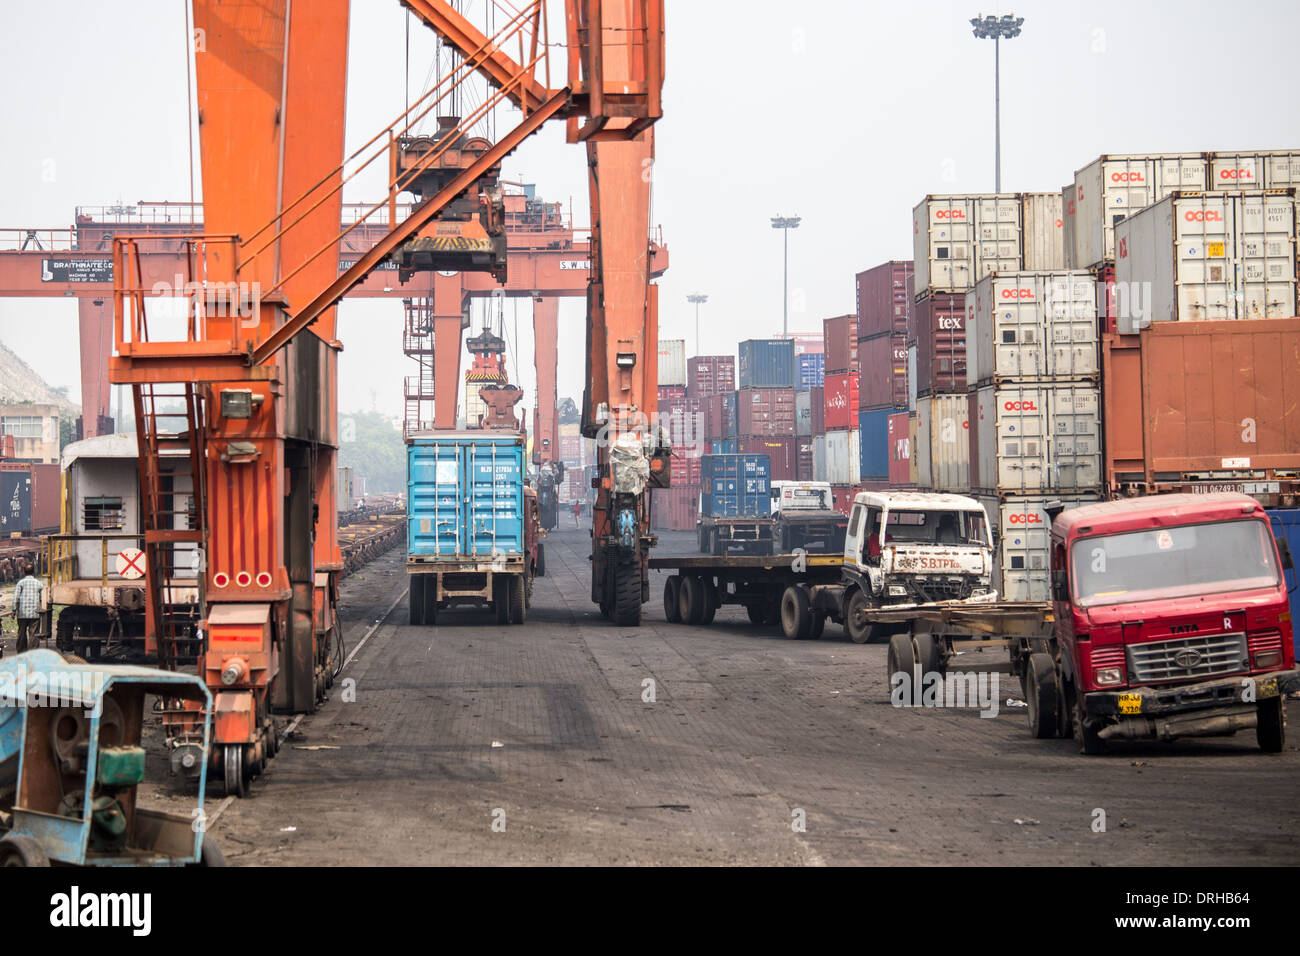 Freight containers at a train shipping facility in Delhi, India - Stock Image